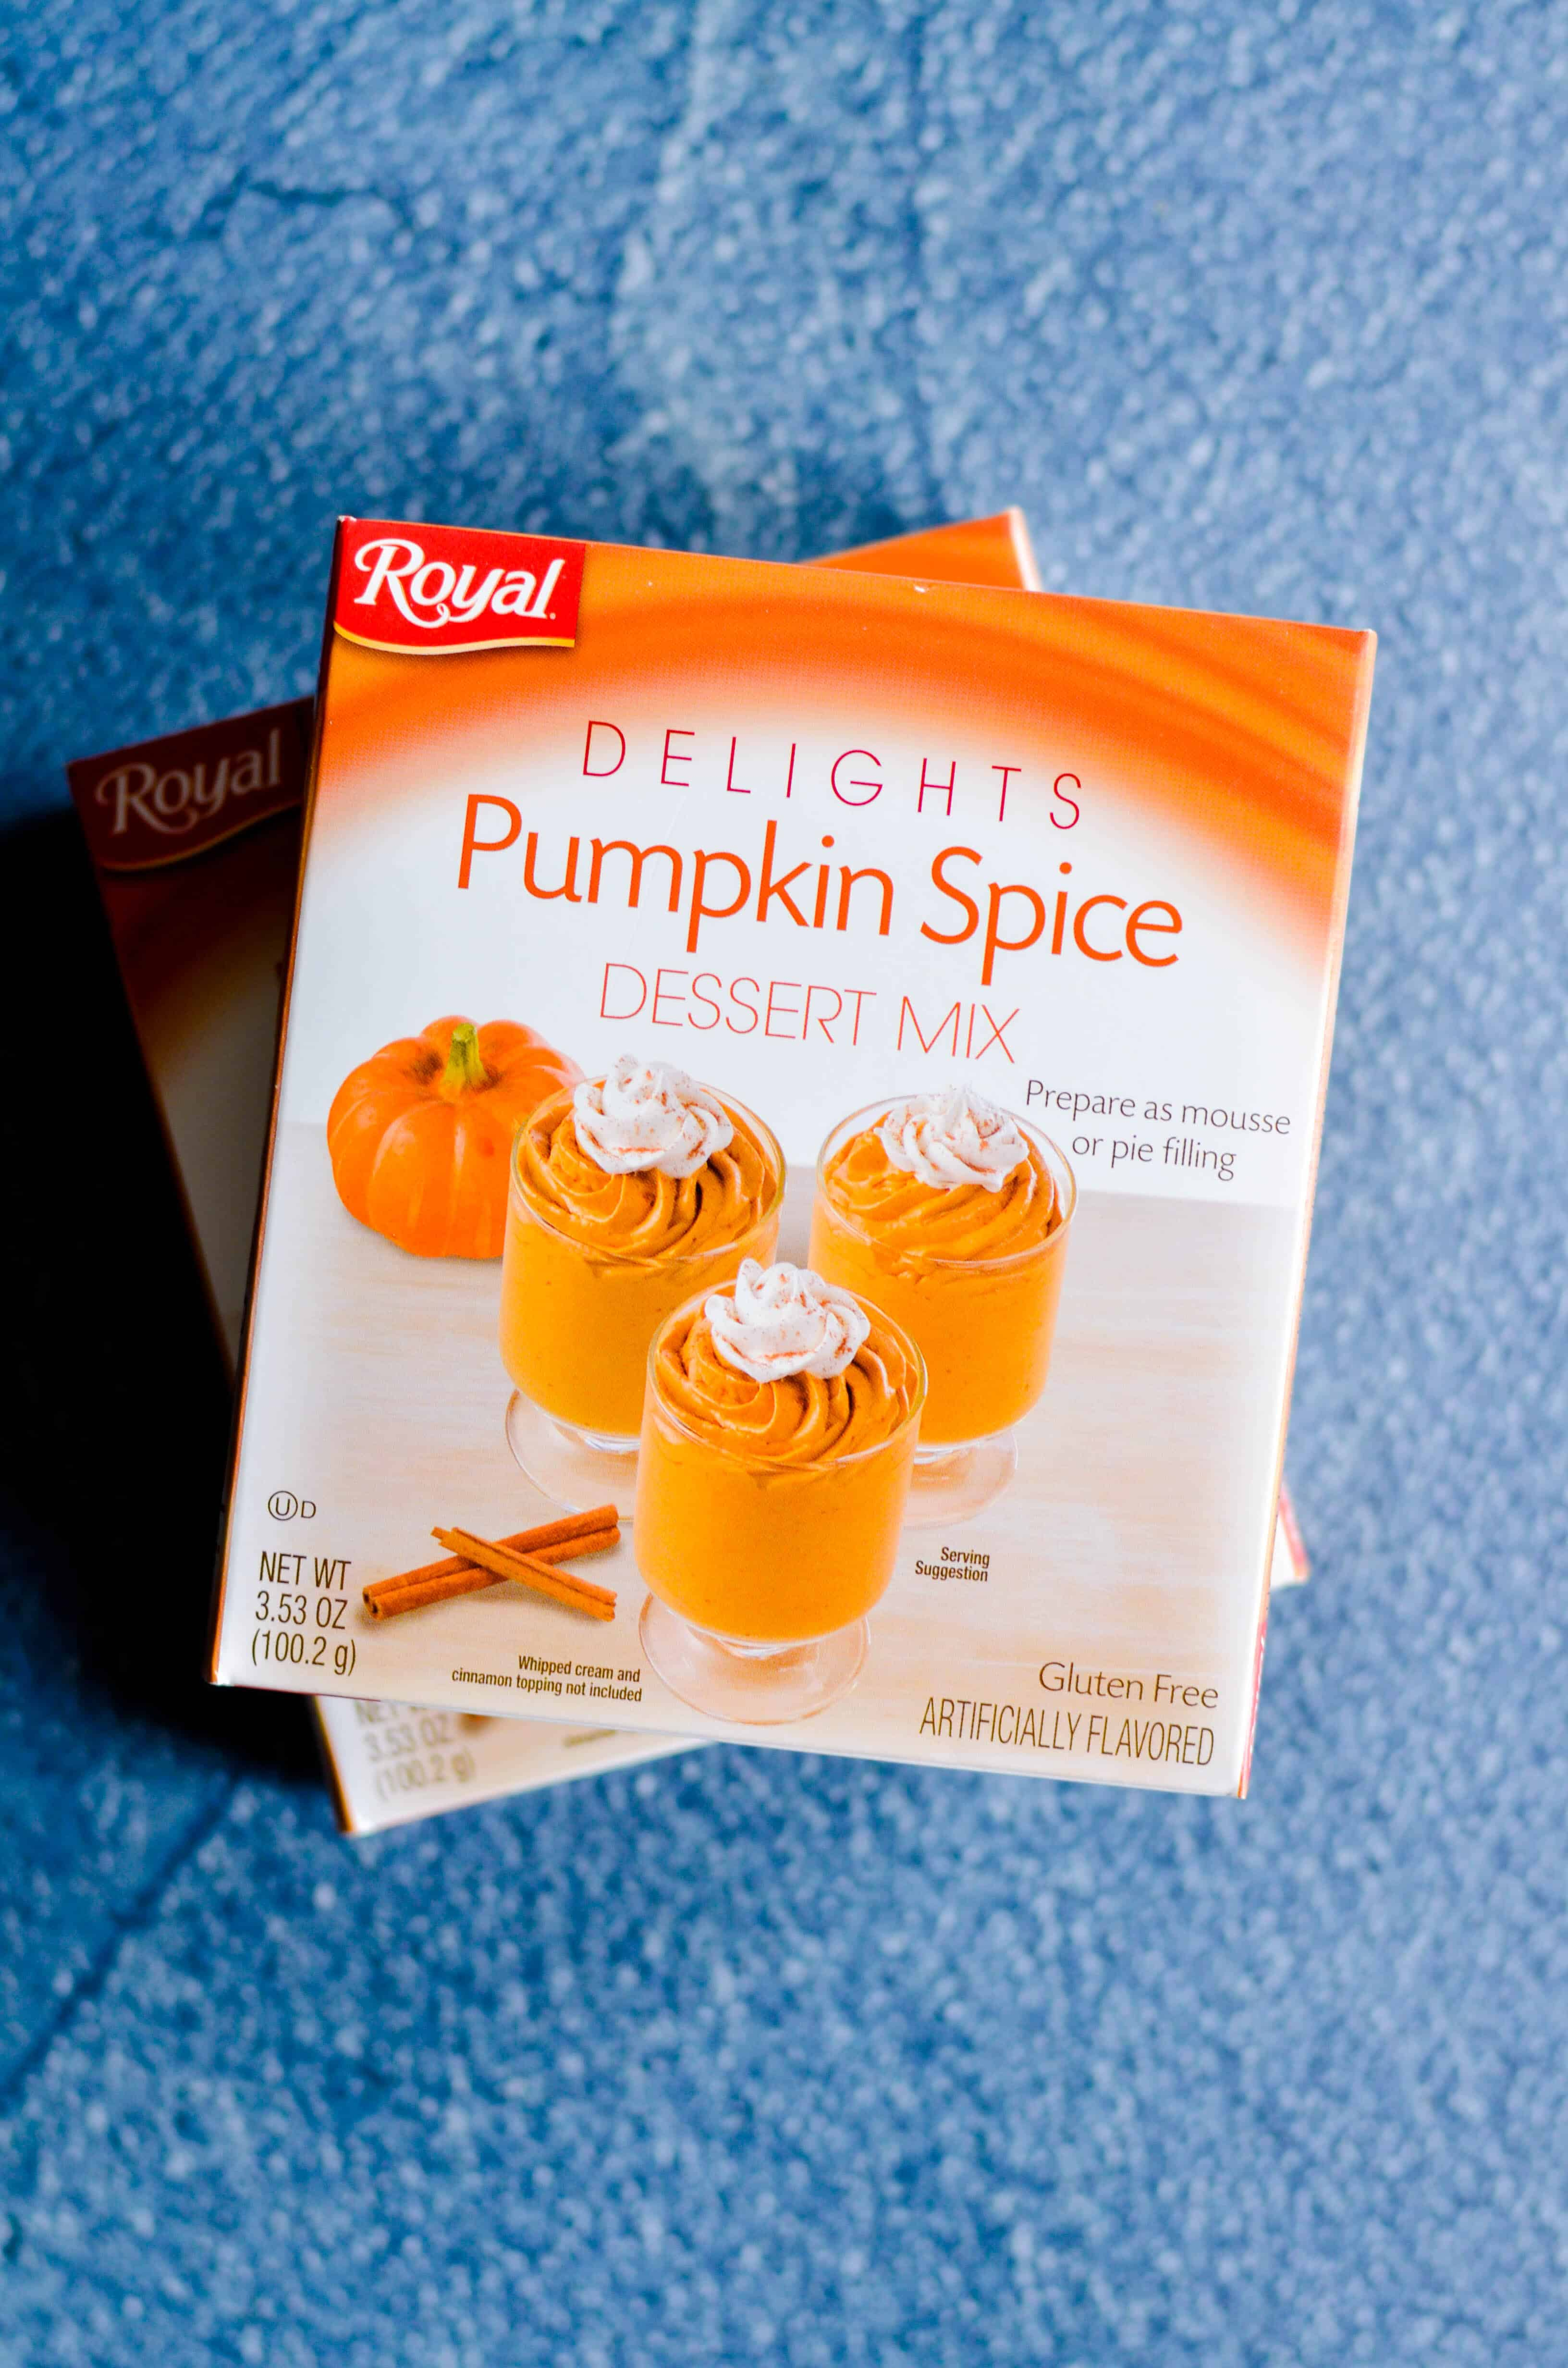 Where do I find pumpkin spice pudding mix? For the past several years, I've seen plenty of Jell-O brand pumpkin spice pudding mix at Target and Walmart. This is the first year in a really long time that I haven't been able to track it down!! I was panicking at first– because my very favorite pumpkin chocolate chip cookies HAS TO have pumpkin pudding mix in the dough.